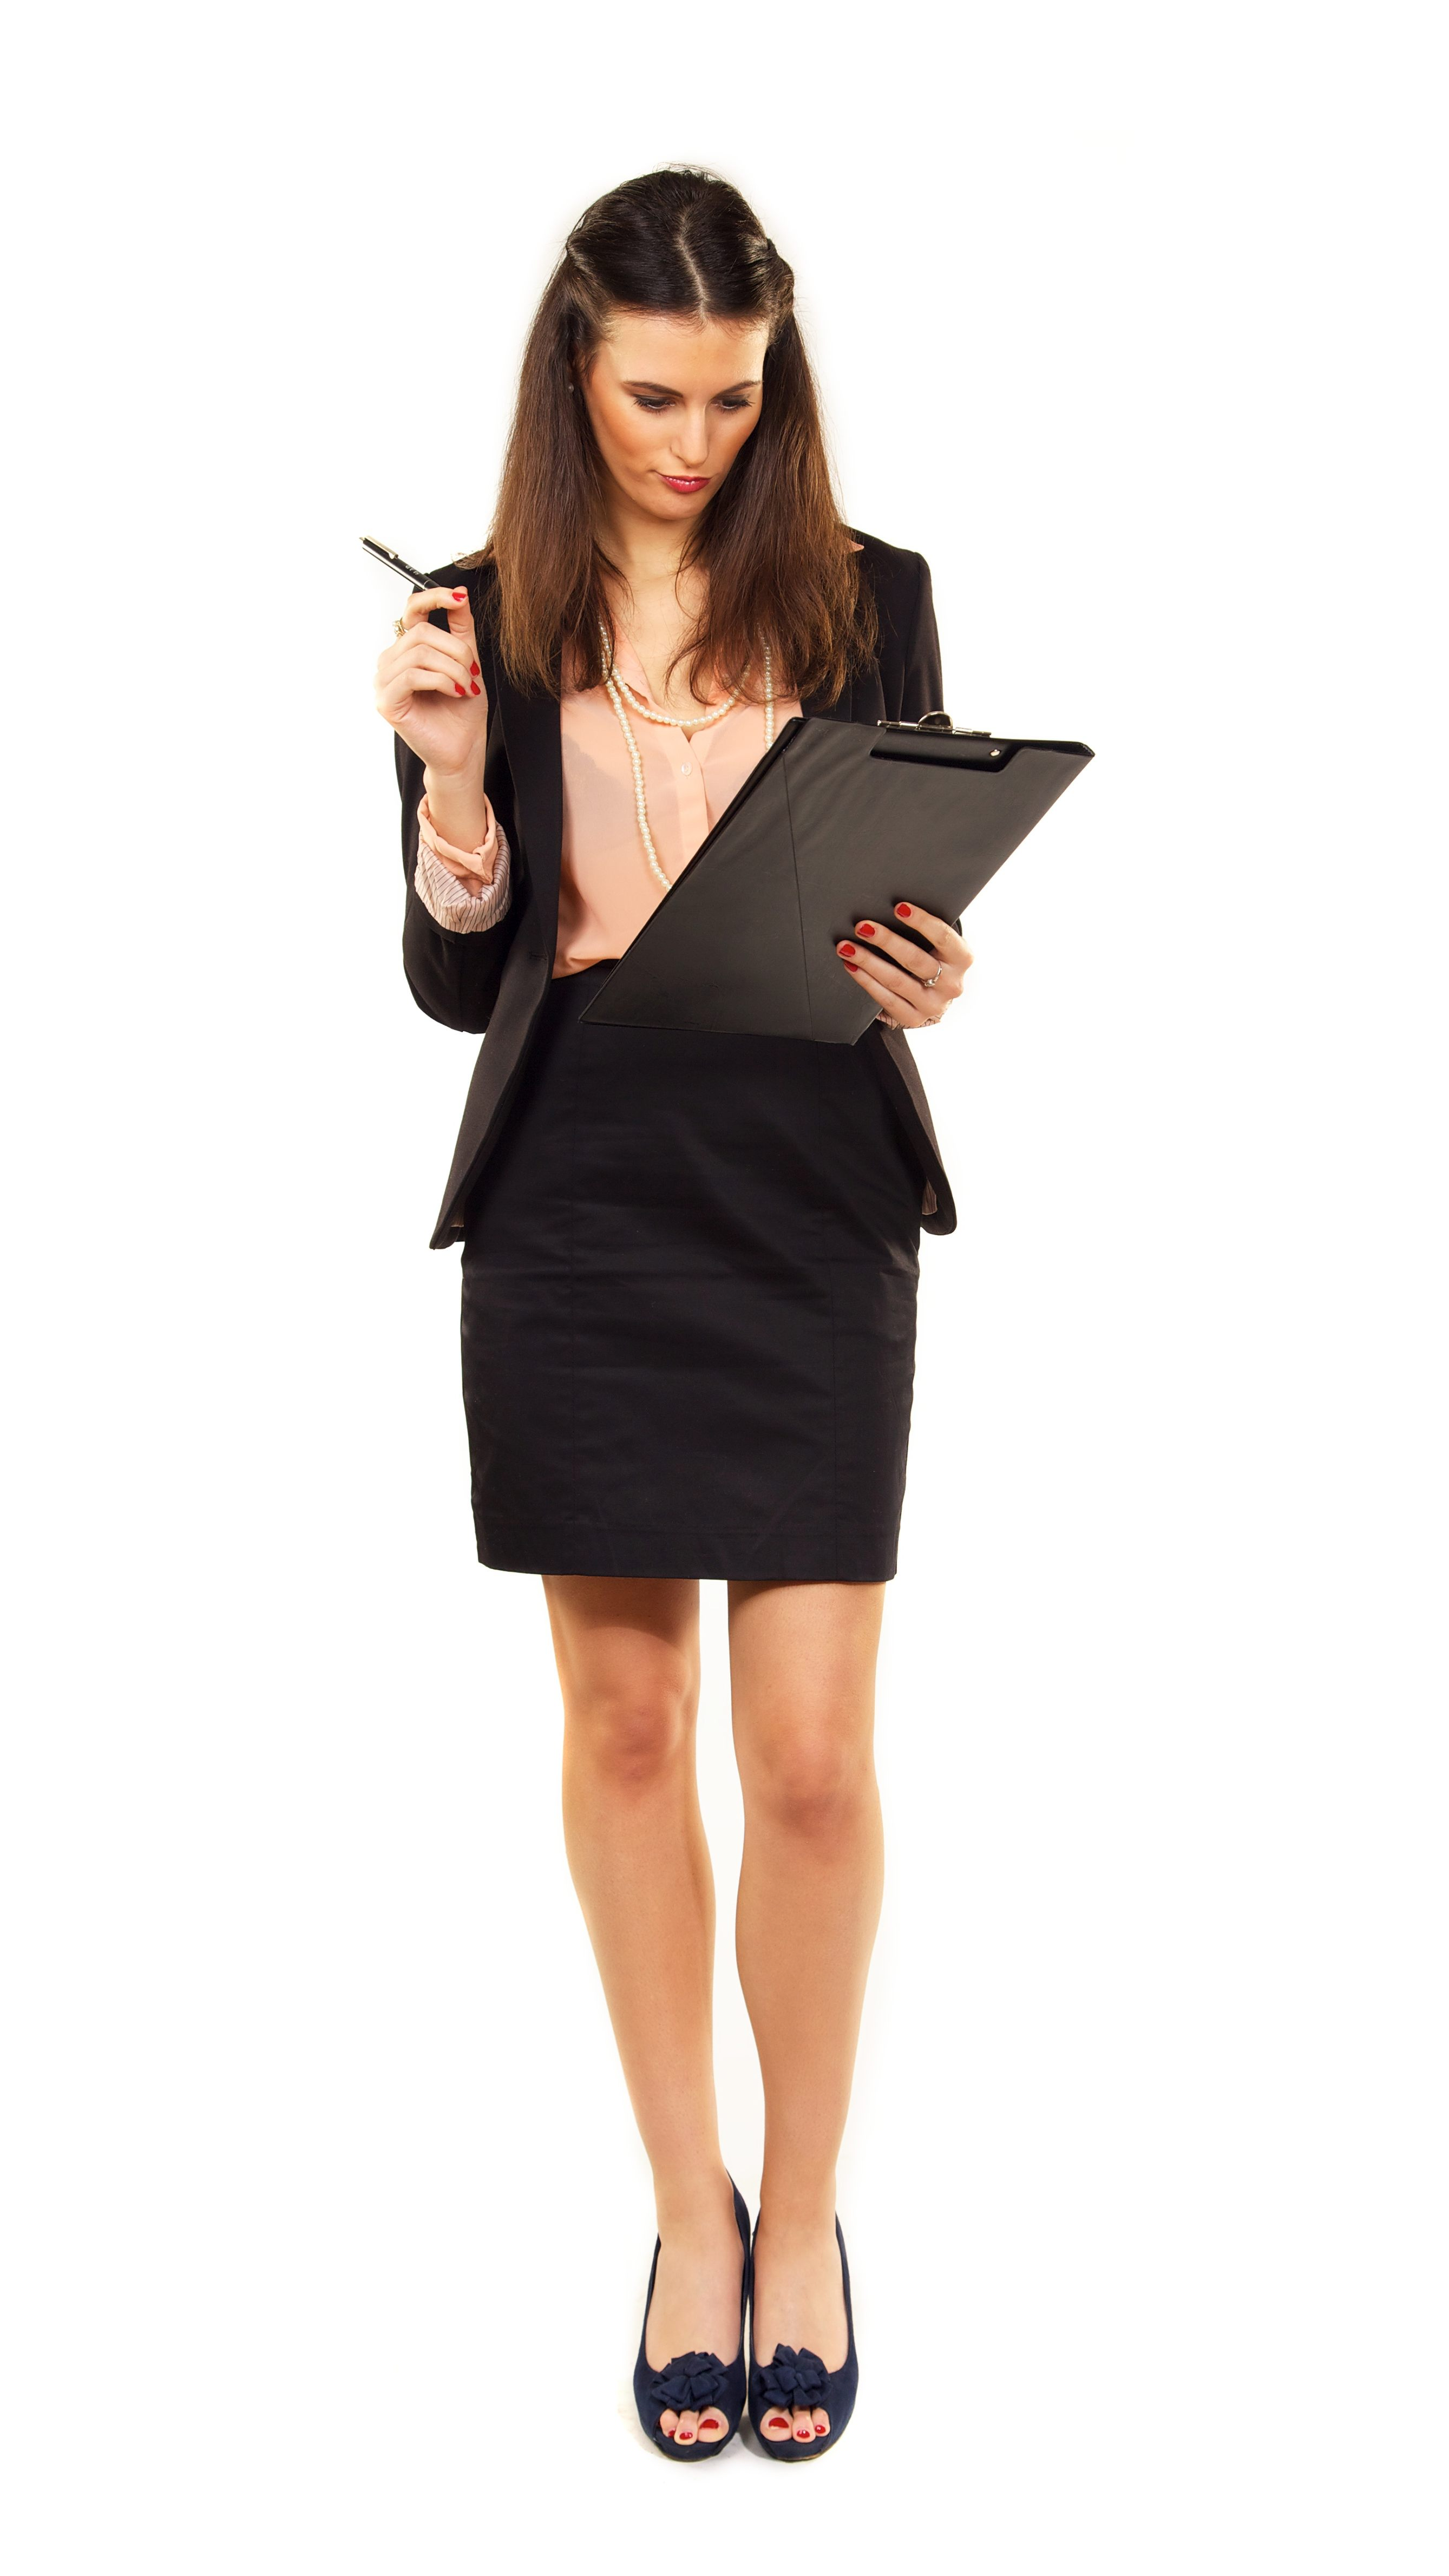 professional woman checking off her checklist on a clipboard with pen in hand